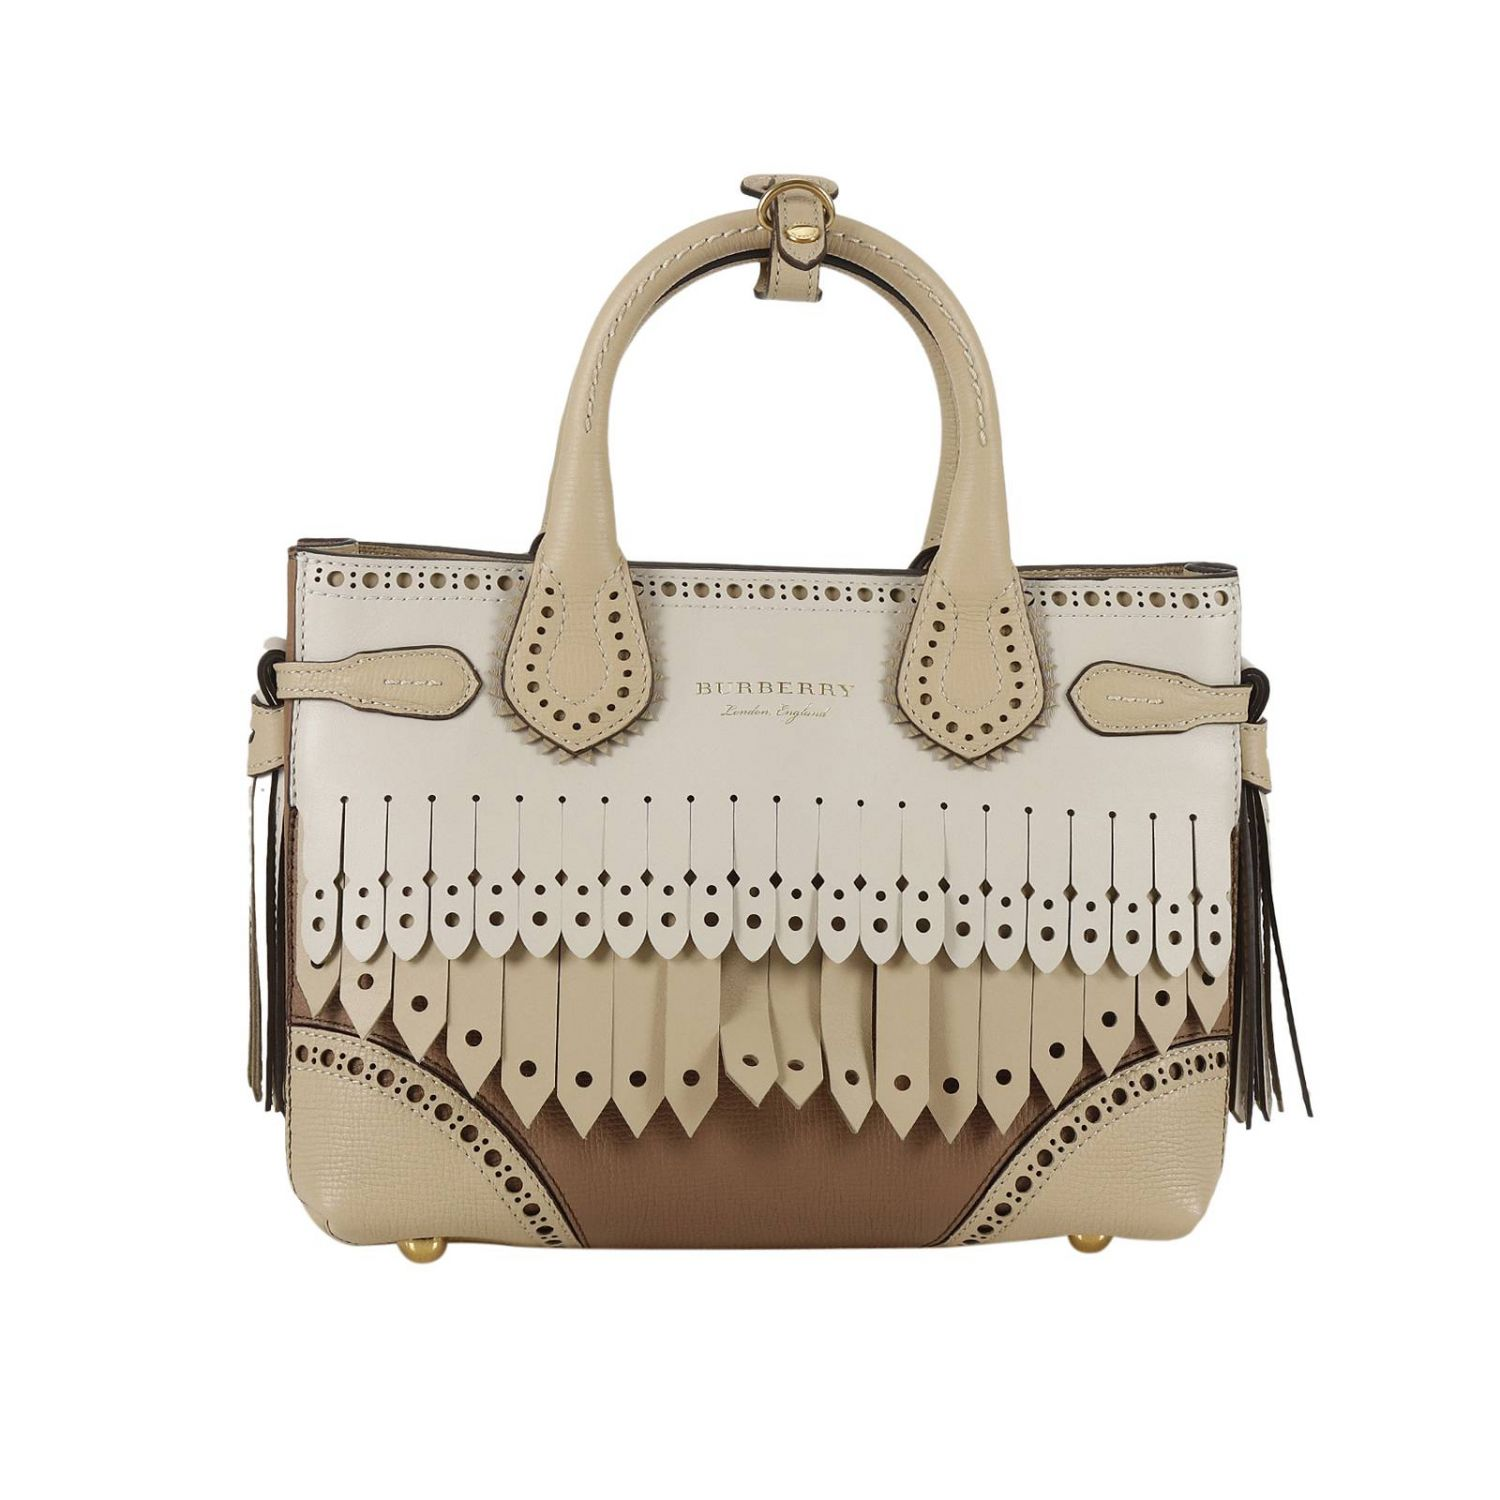 Handbag Shoulder Bag Women Burberry 8288639